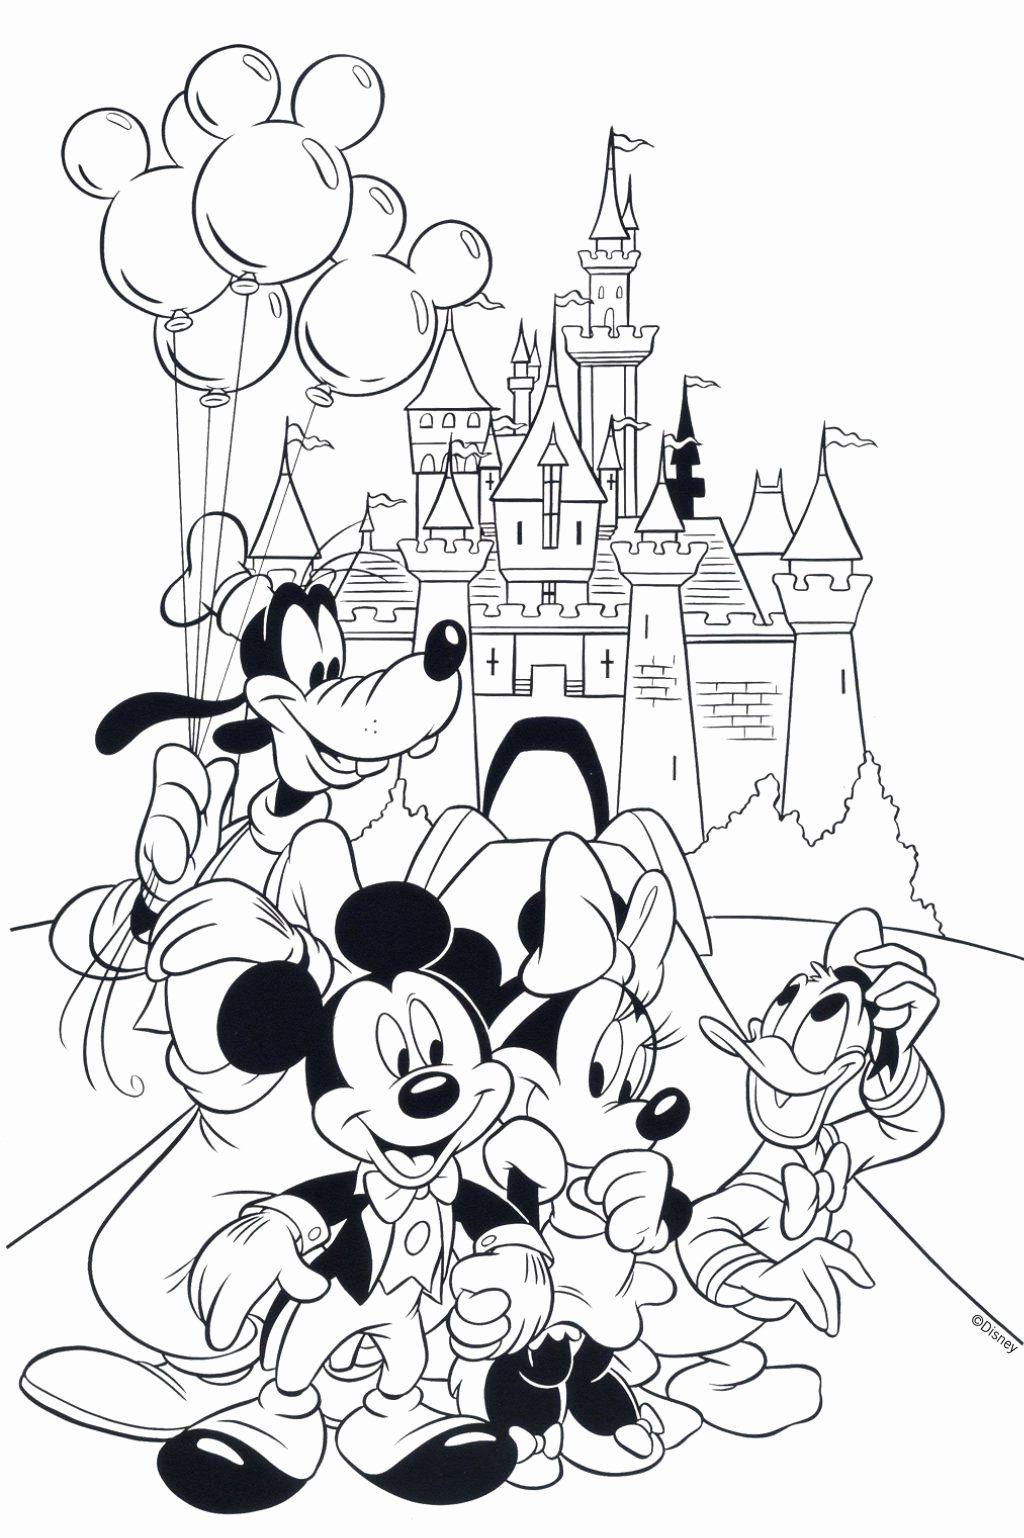 Science Coloring Pages Printable Awesome Coloring Pages Mickey And The Roadster Racers In 2020 Disney Coloring Pages Mickey Mouse Coloring Pages Mickey Coloring Pages